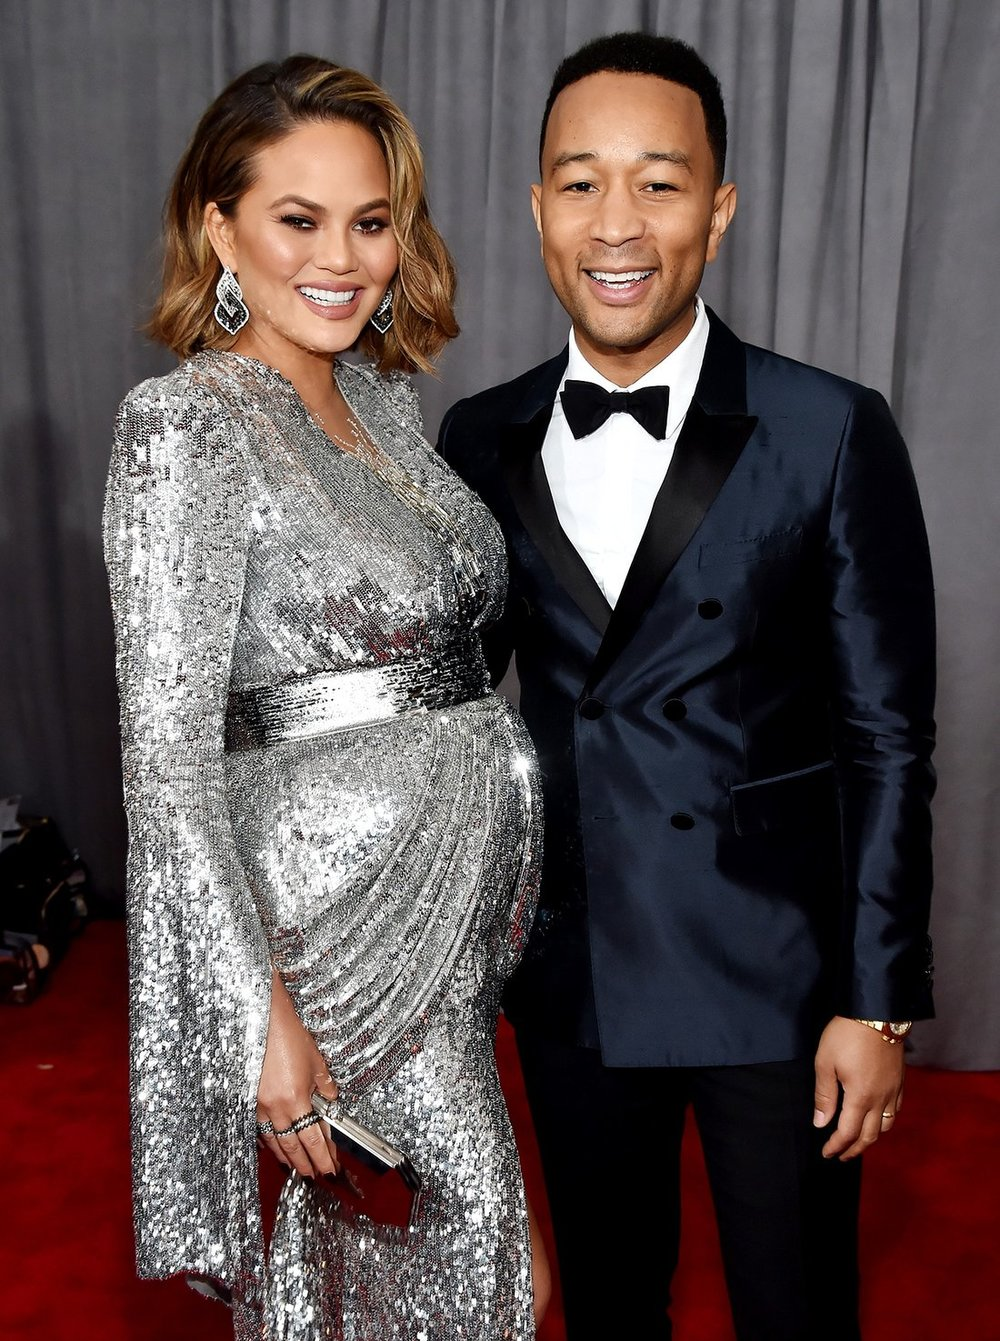 Chrissy Teigen and John Legend, via Kevin Mazur/Getty.